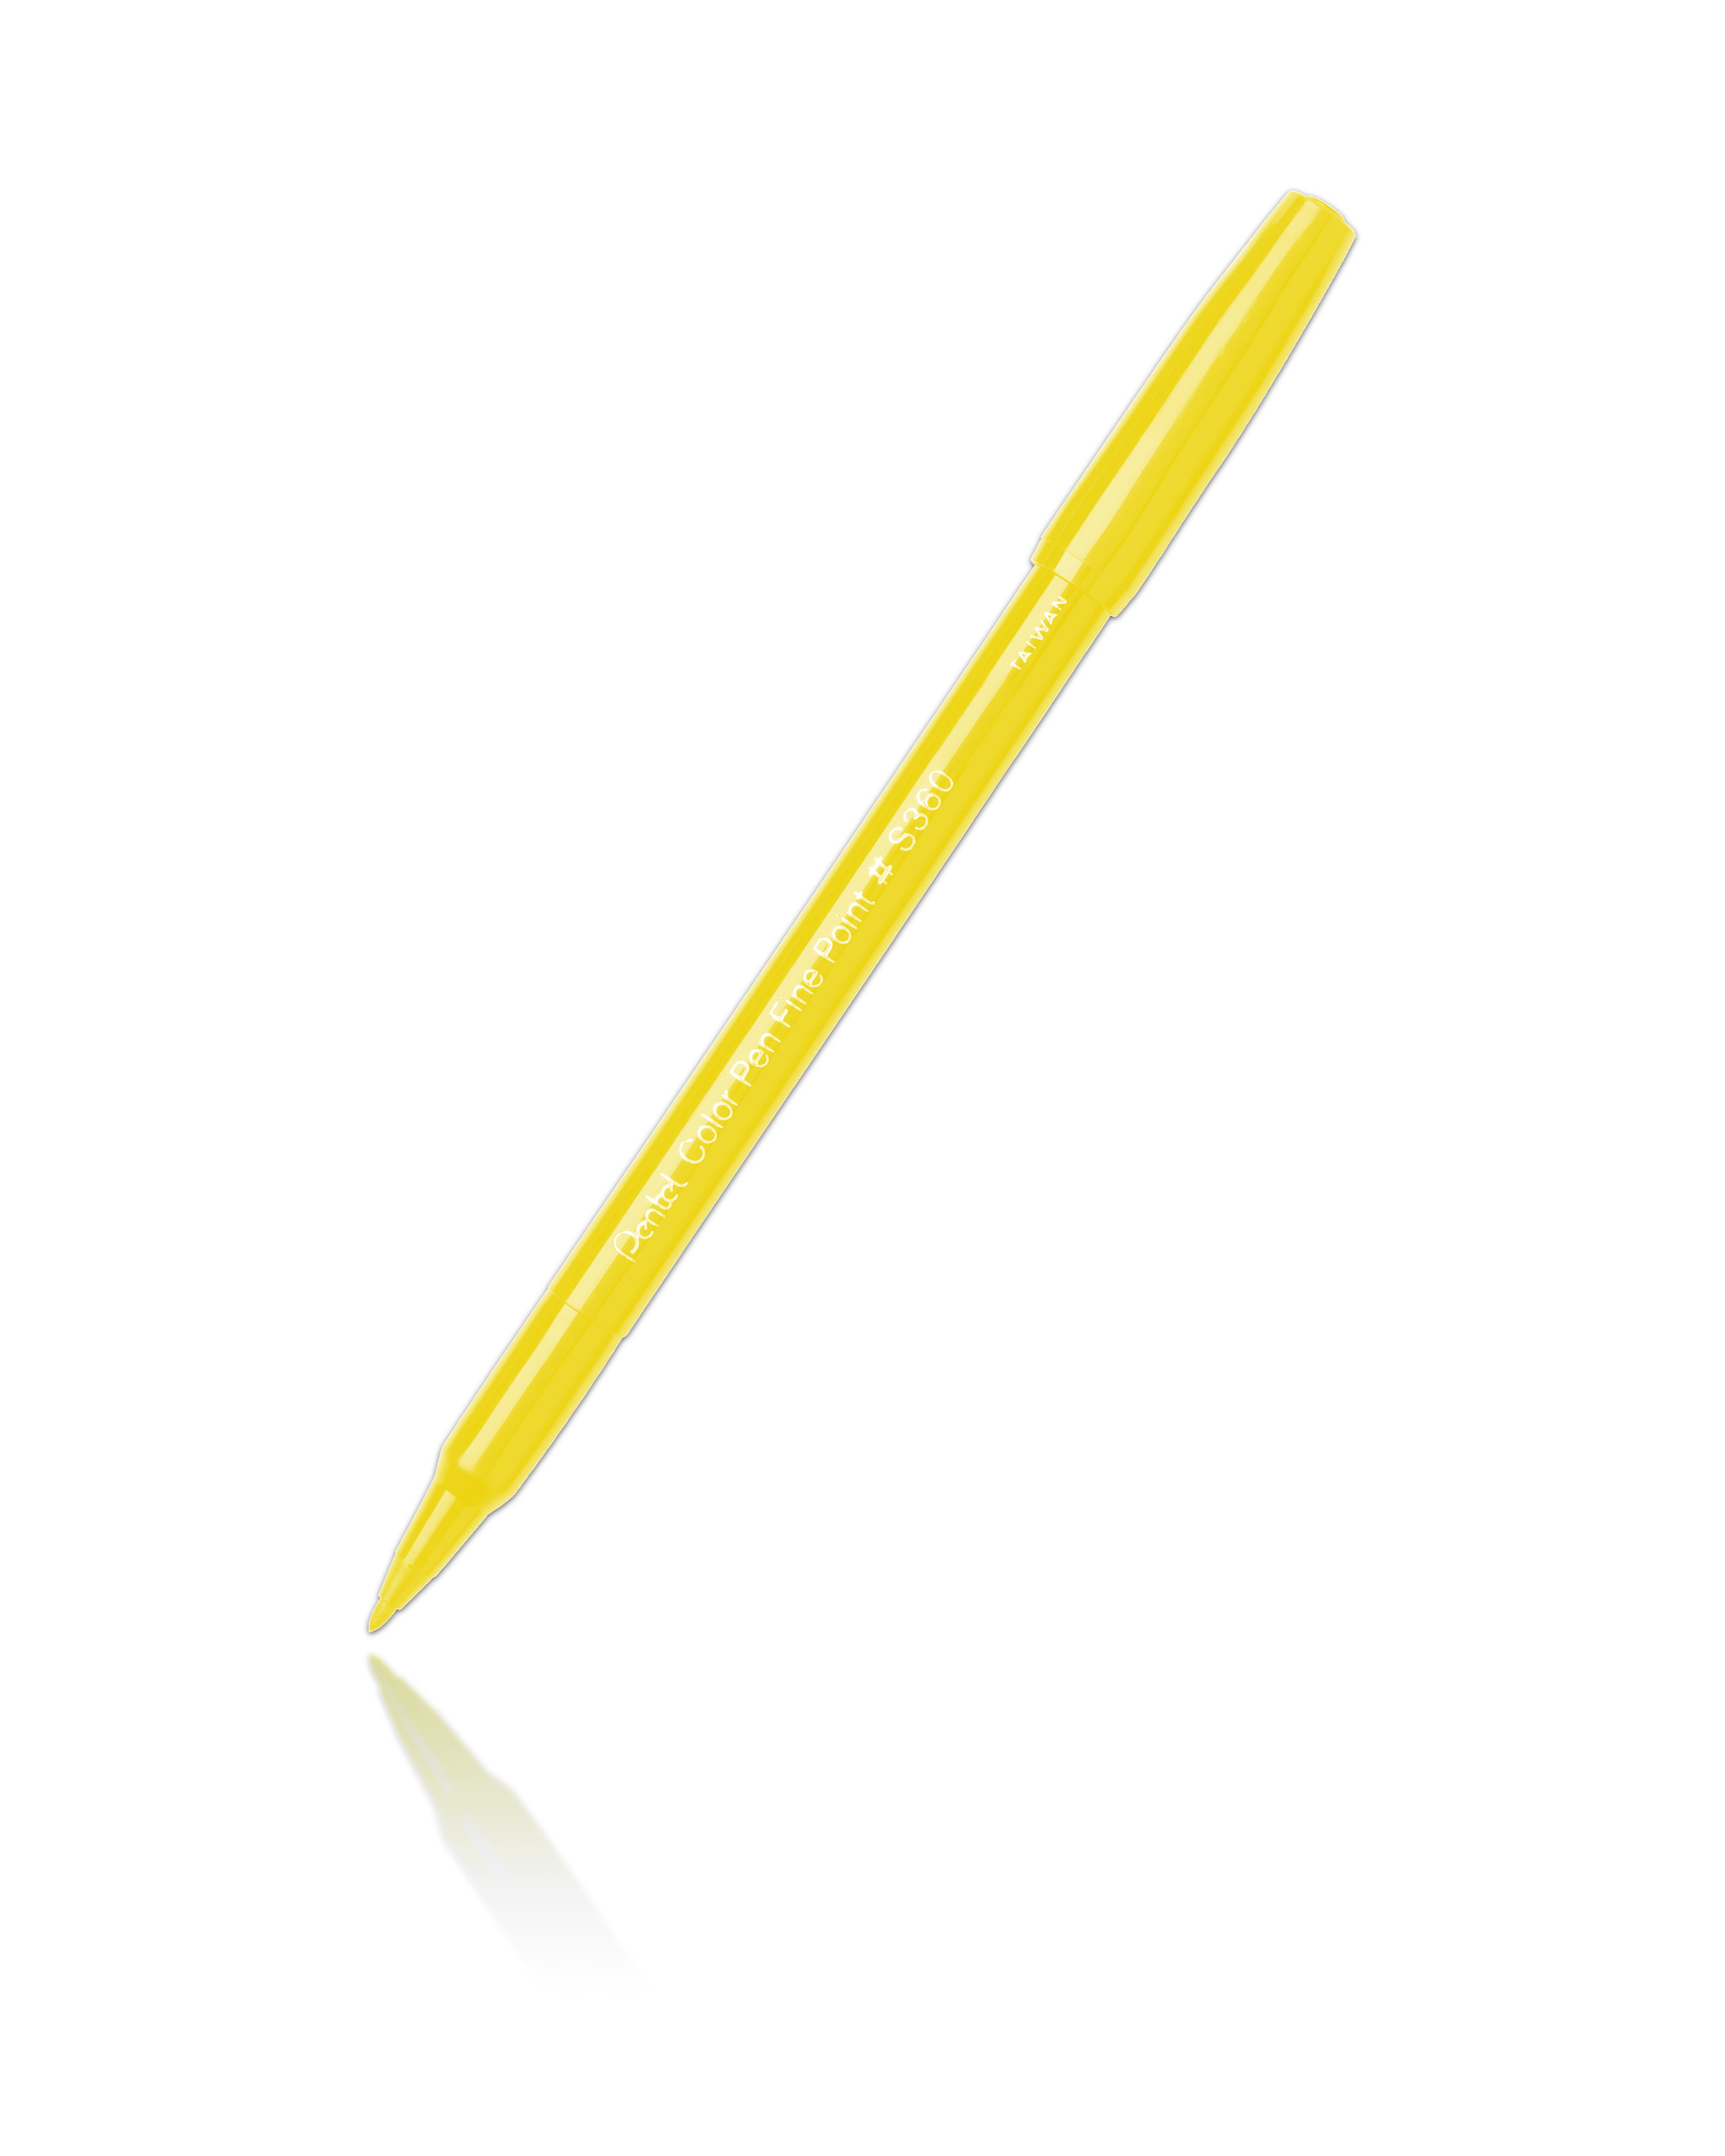 Pentel S360 Color Pen Lemon Yellow-105